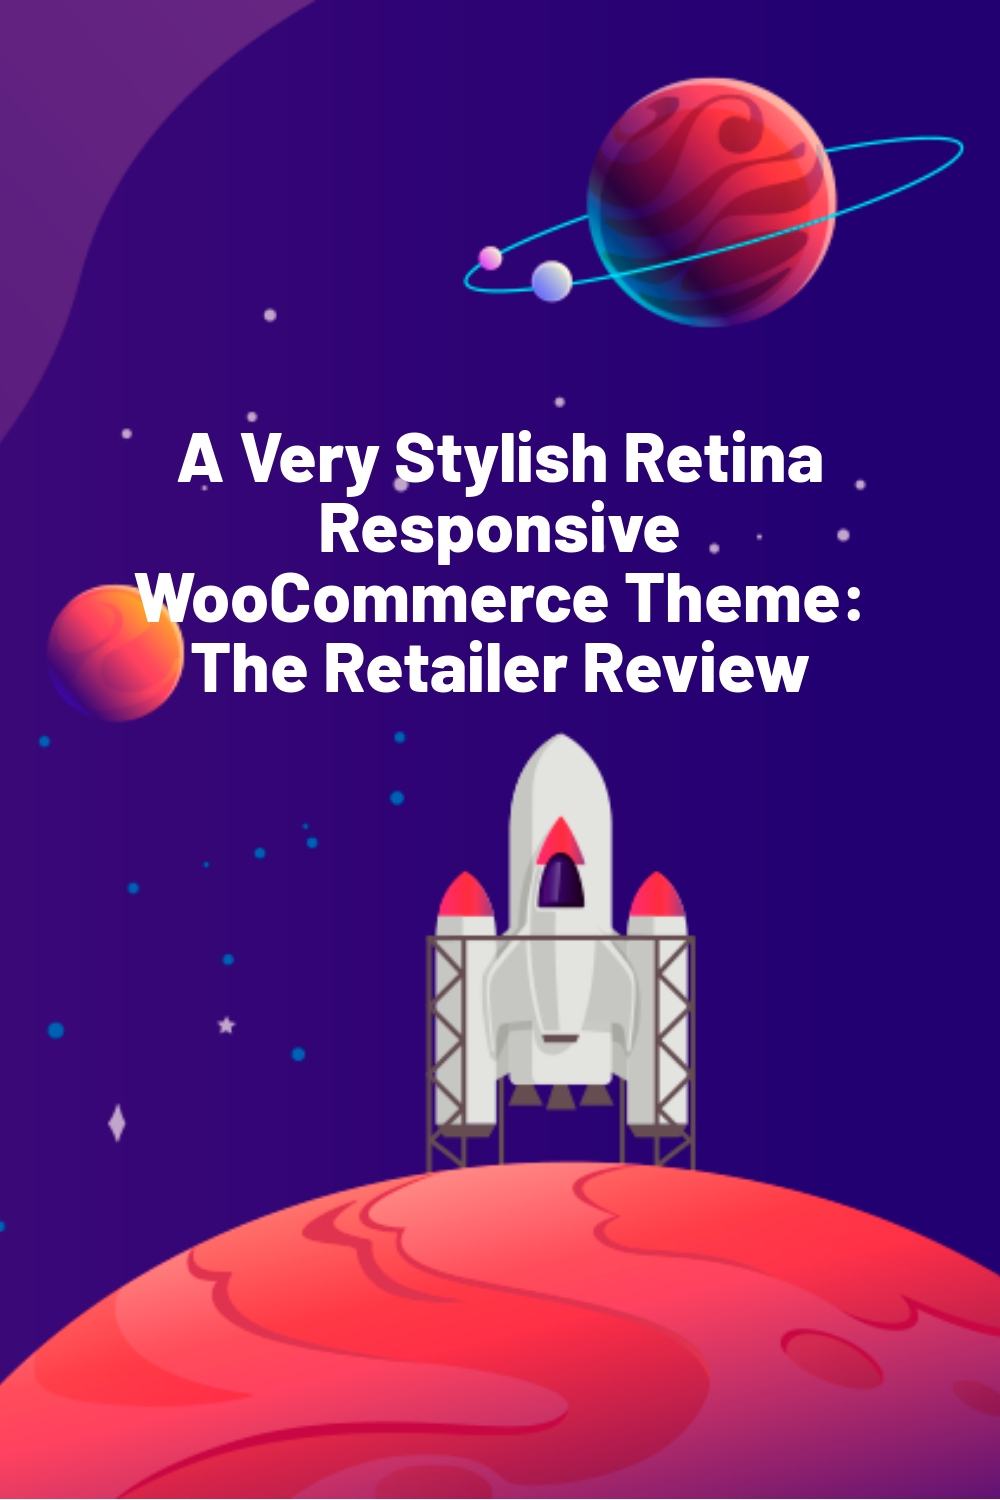 A Very Stylish Retina Responsive WooCommerce Theme: The Retailer Review